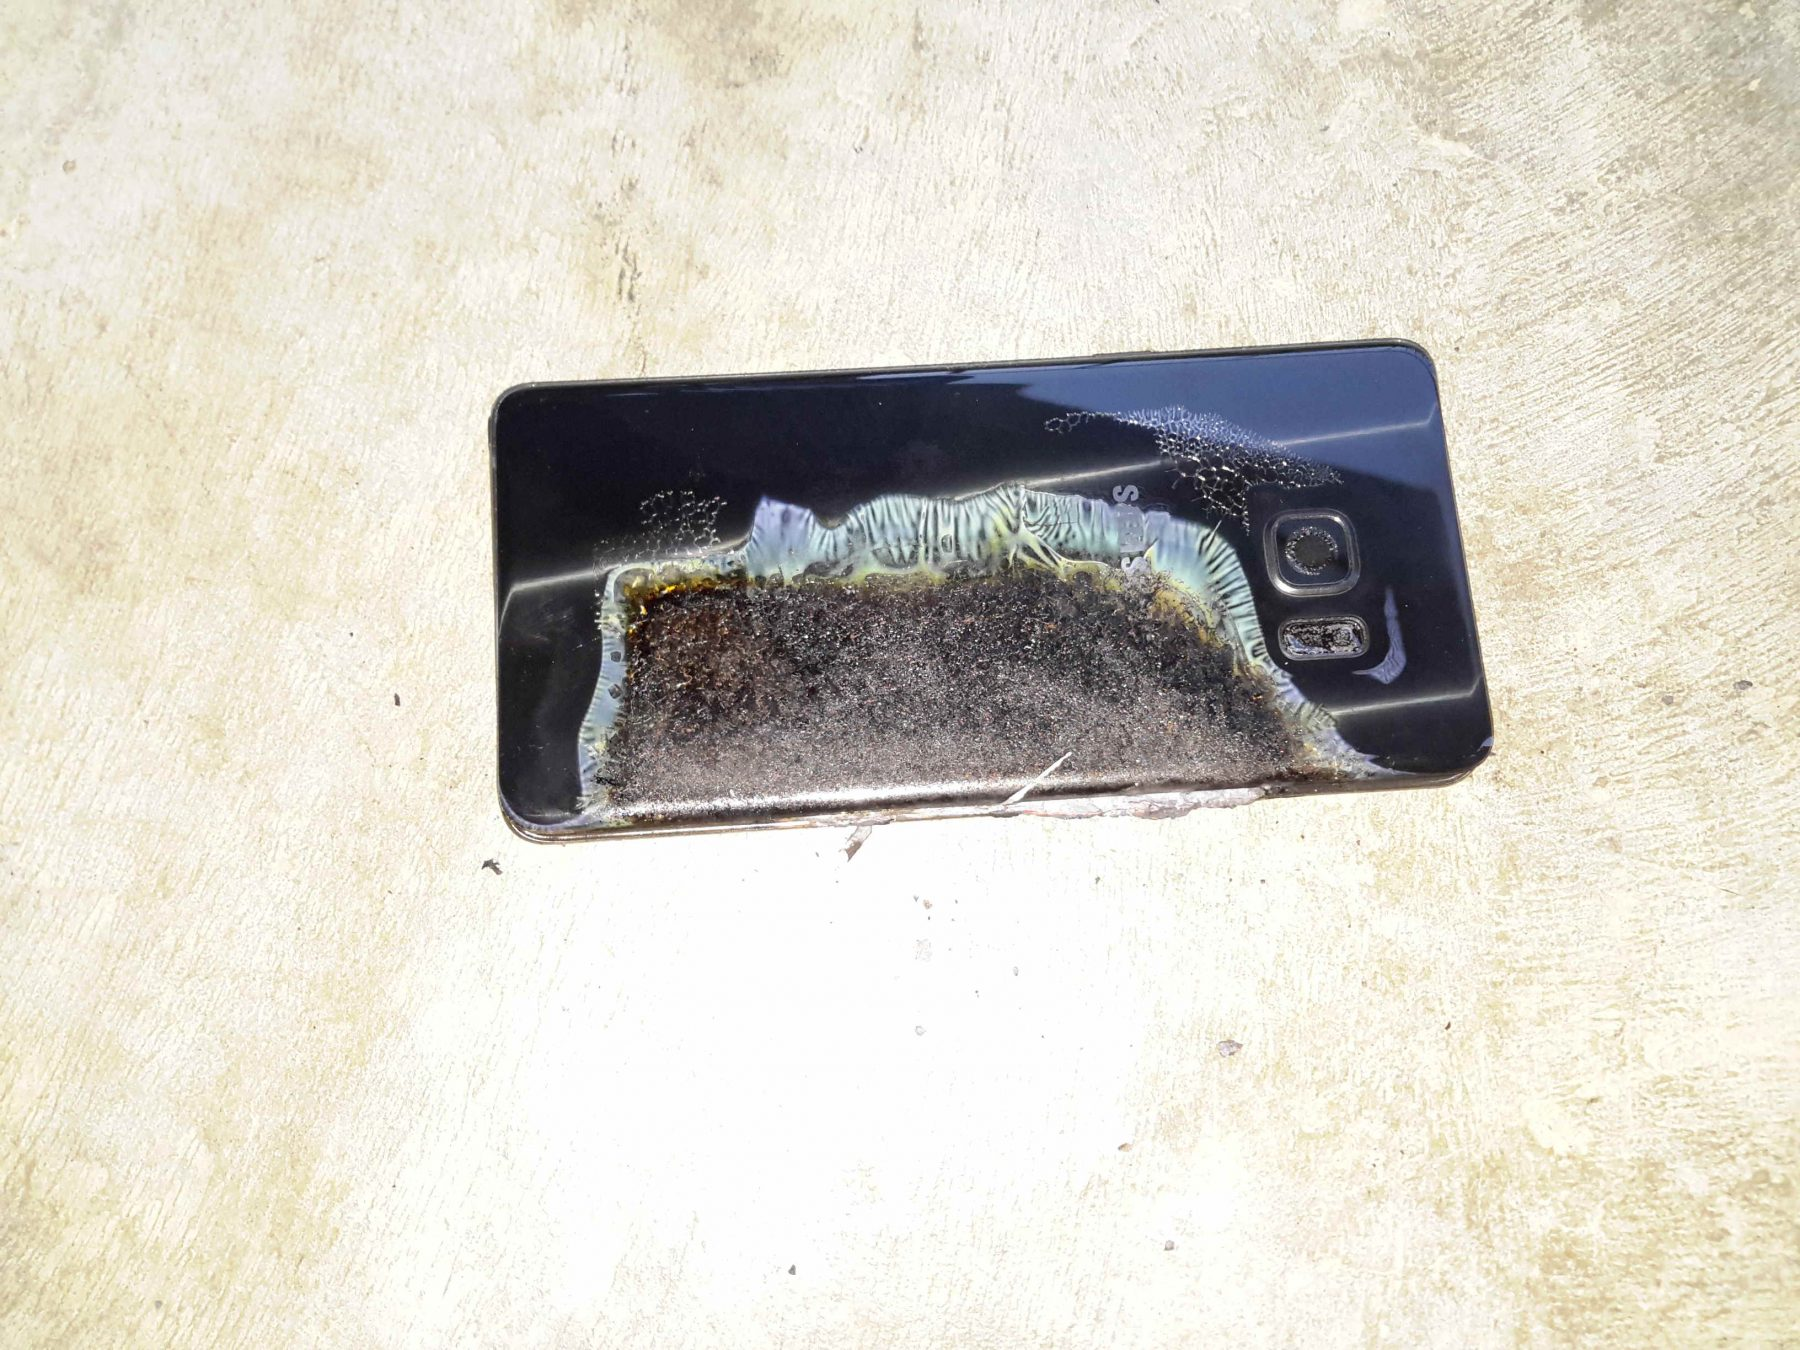 Galaxy Note 7 battery fire cause